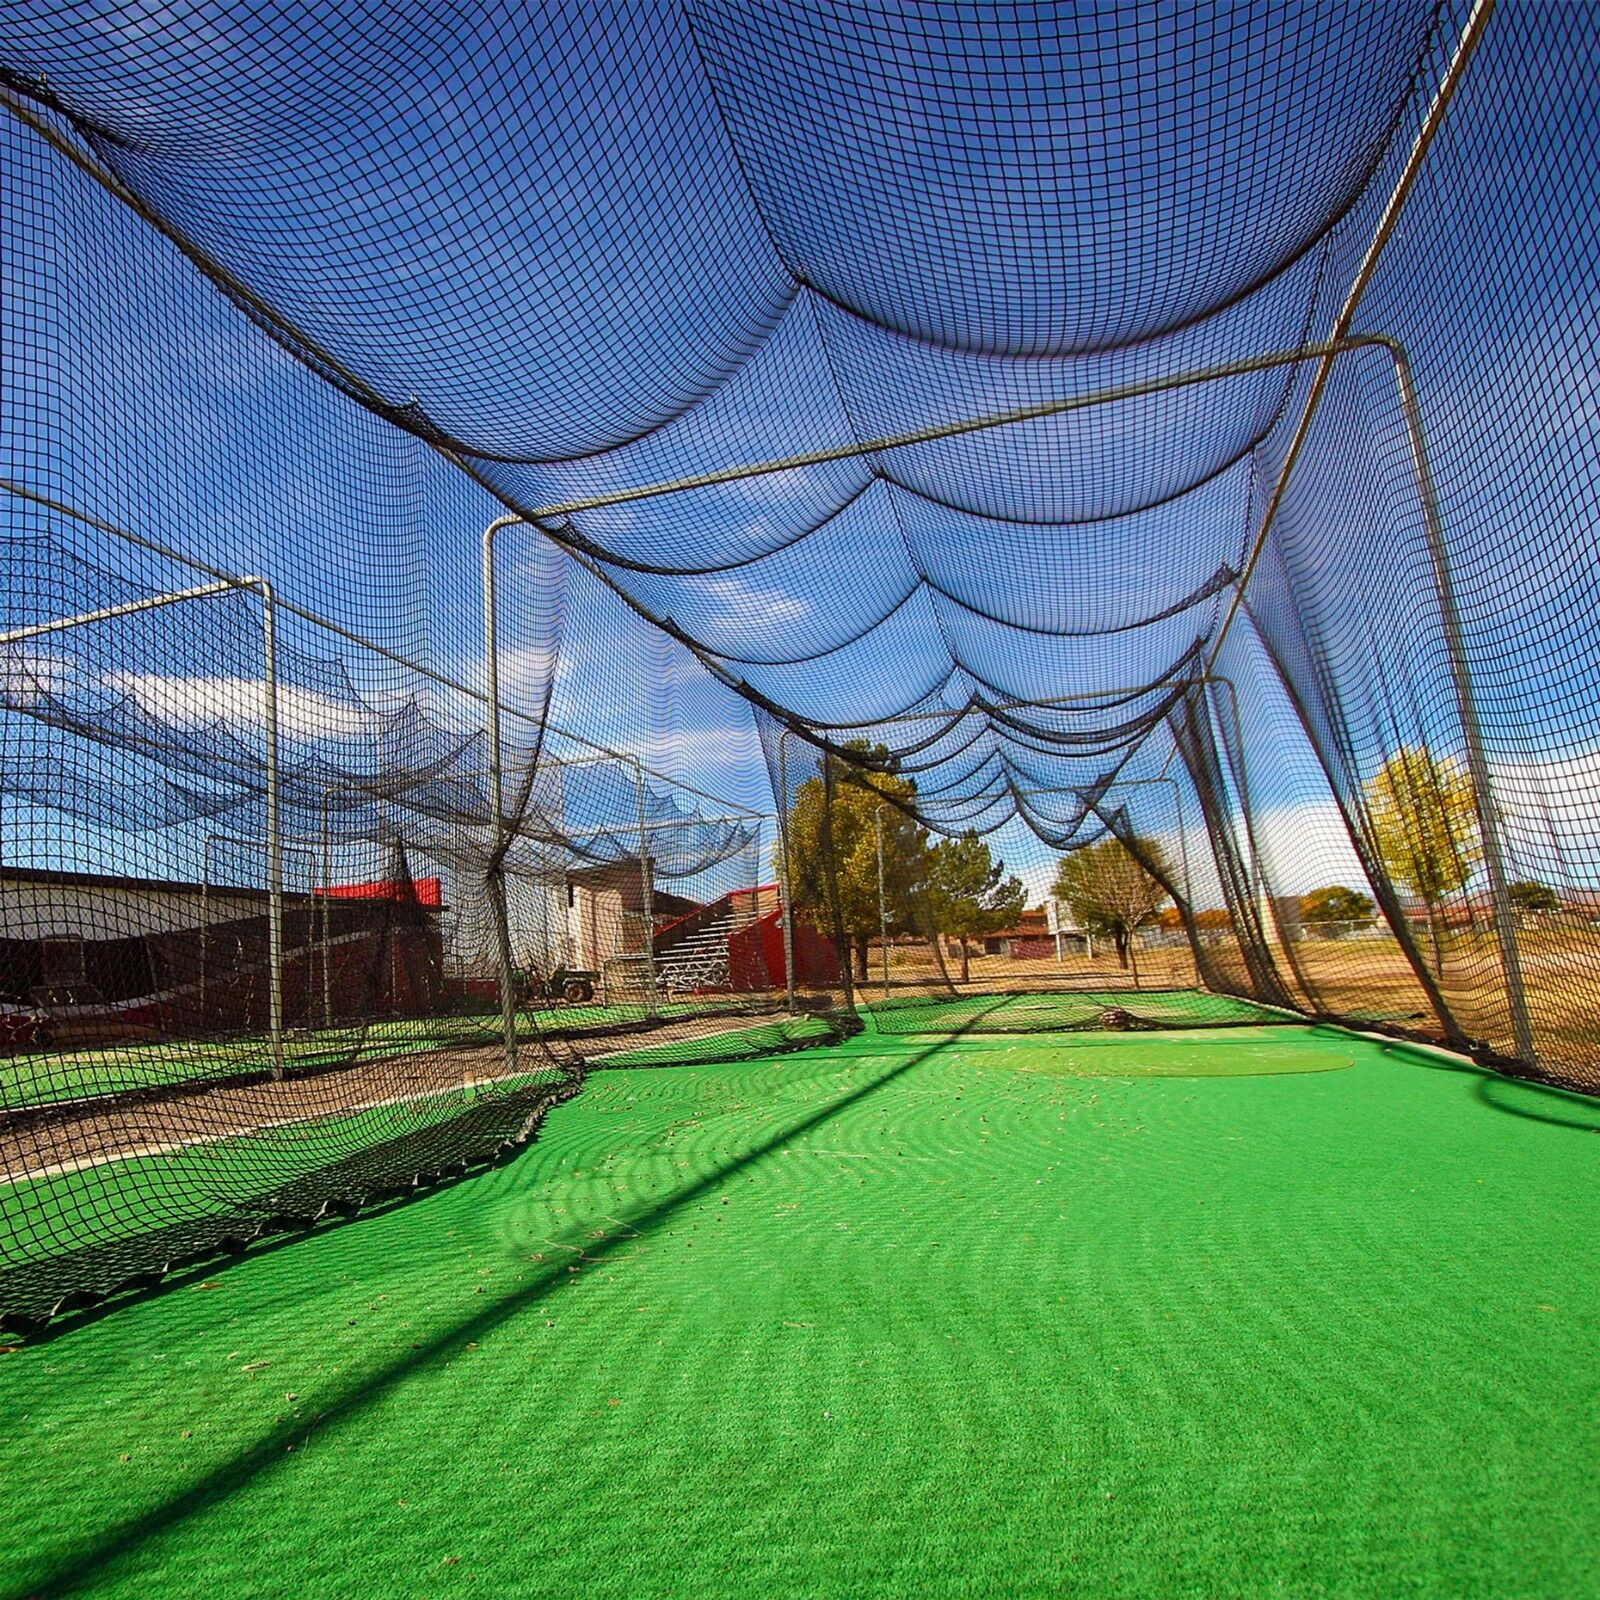 FORTRESS 20ft (6.1m) Baseball Batting Cage Replacement Net [Net World Sports]